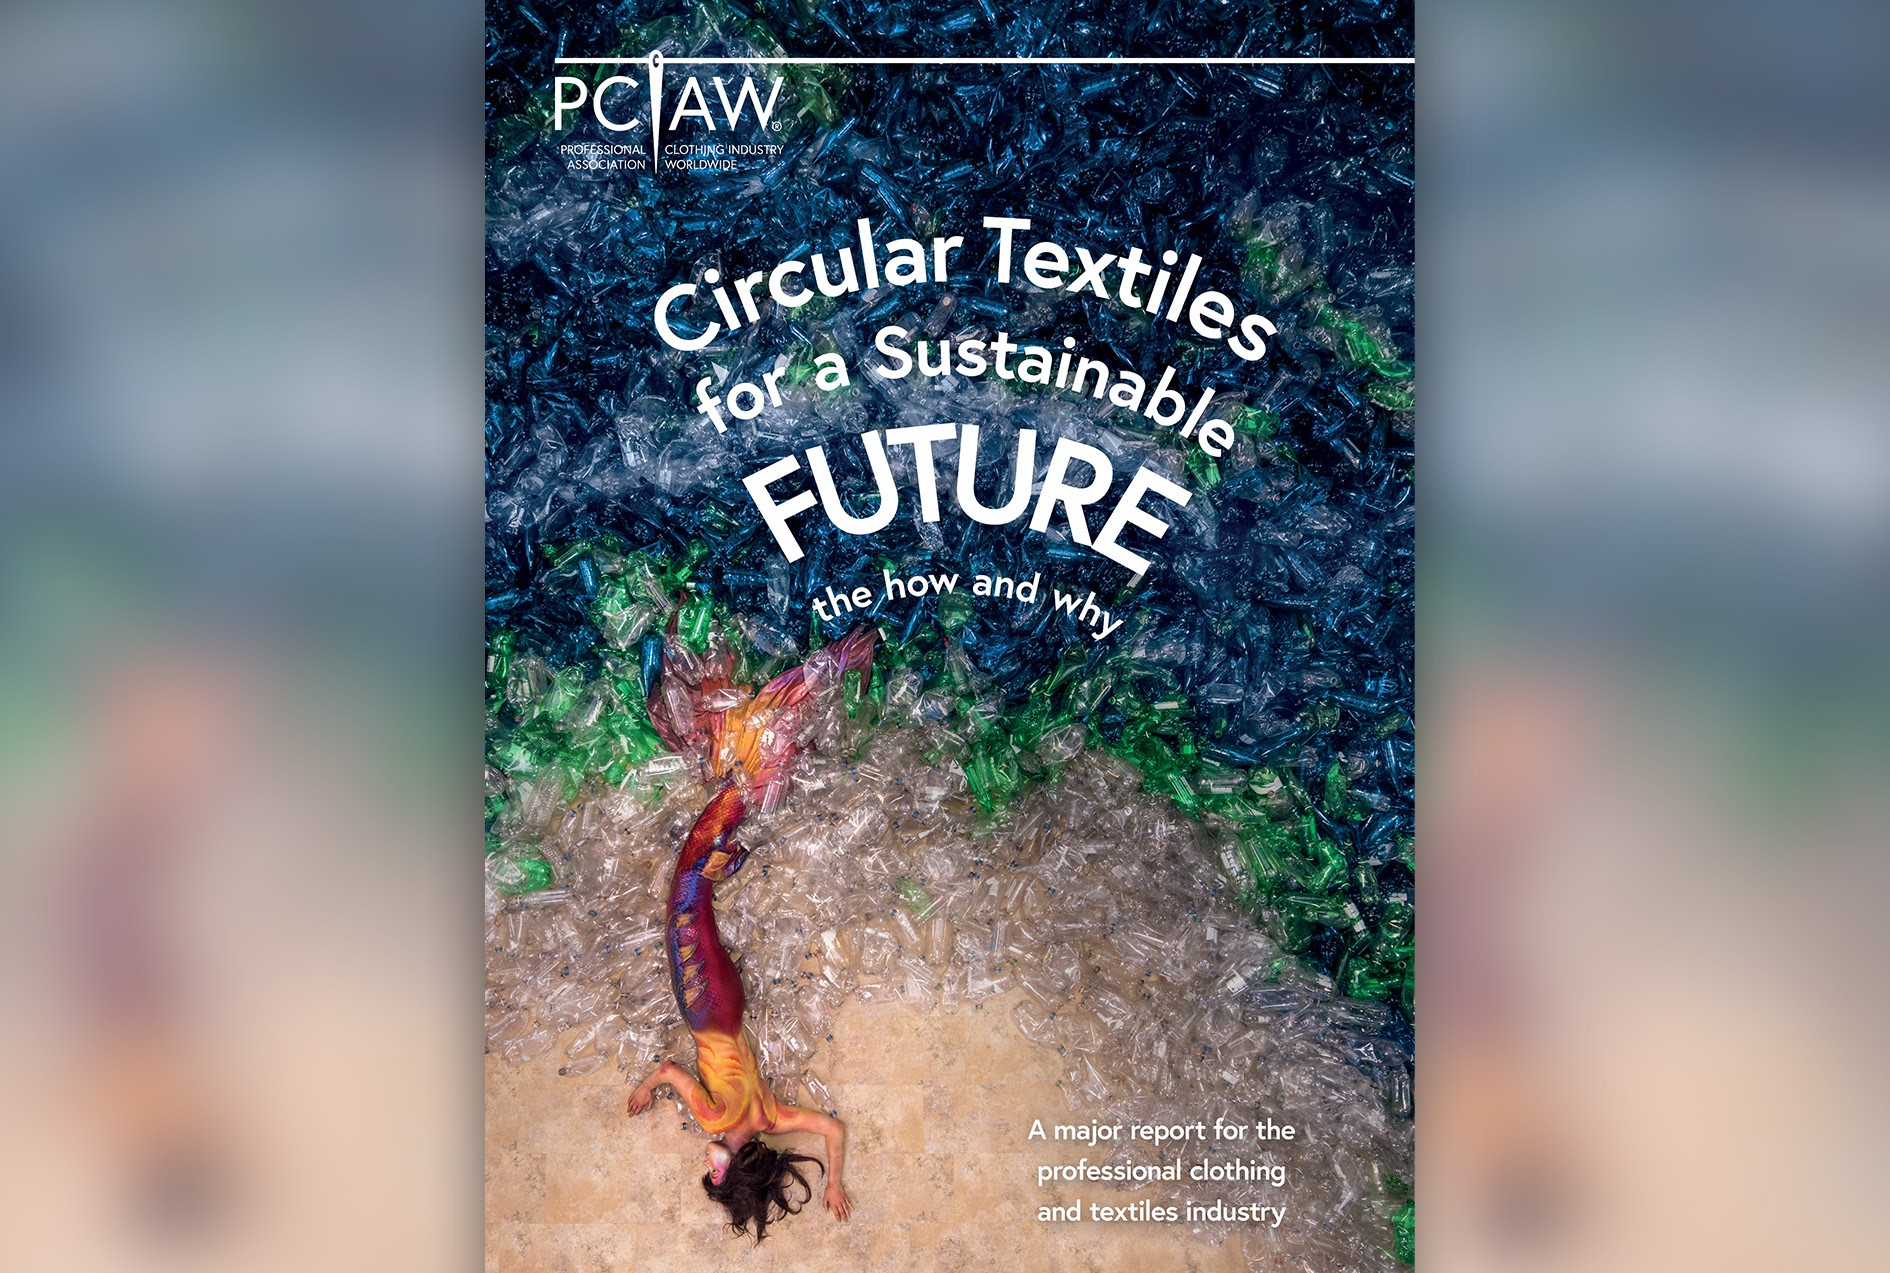 PCIAW® is excited to finally share its first of its kind report, Circular Textiles for a Sustainable Future, with buyers across the world.